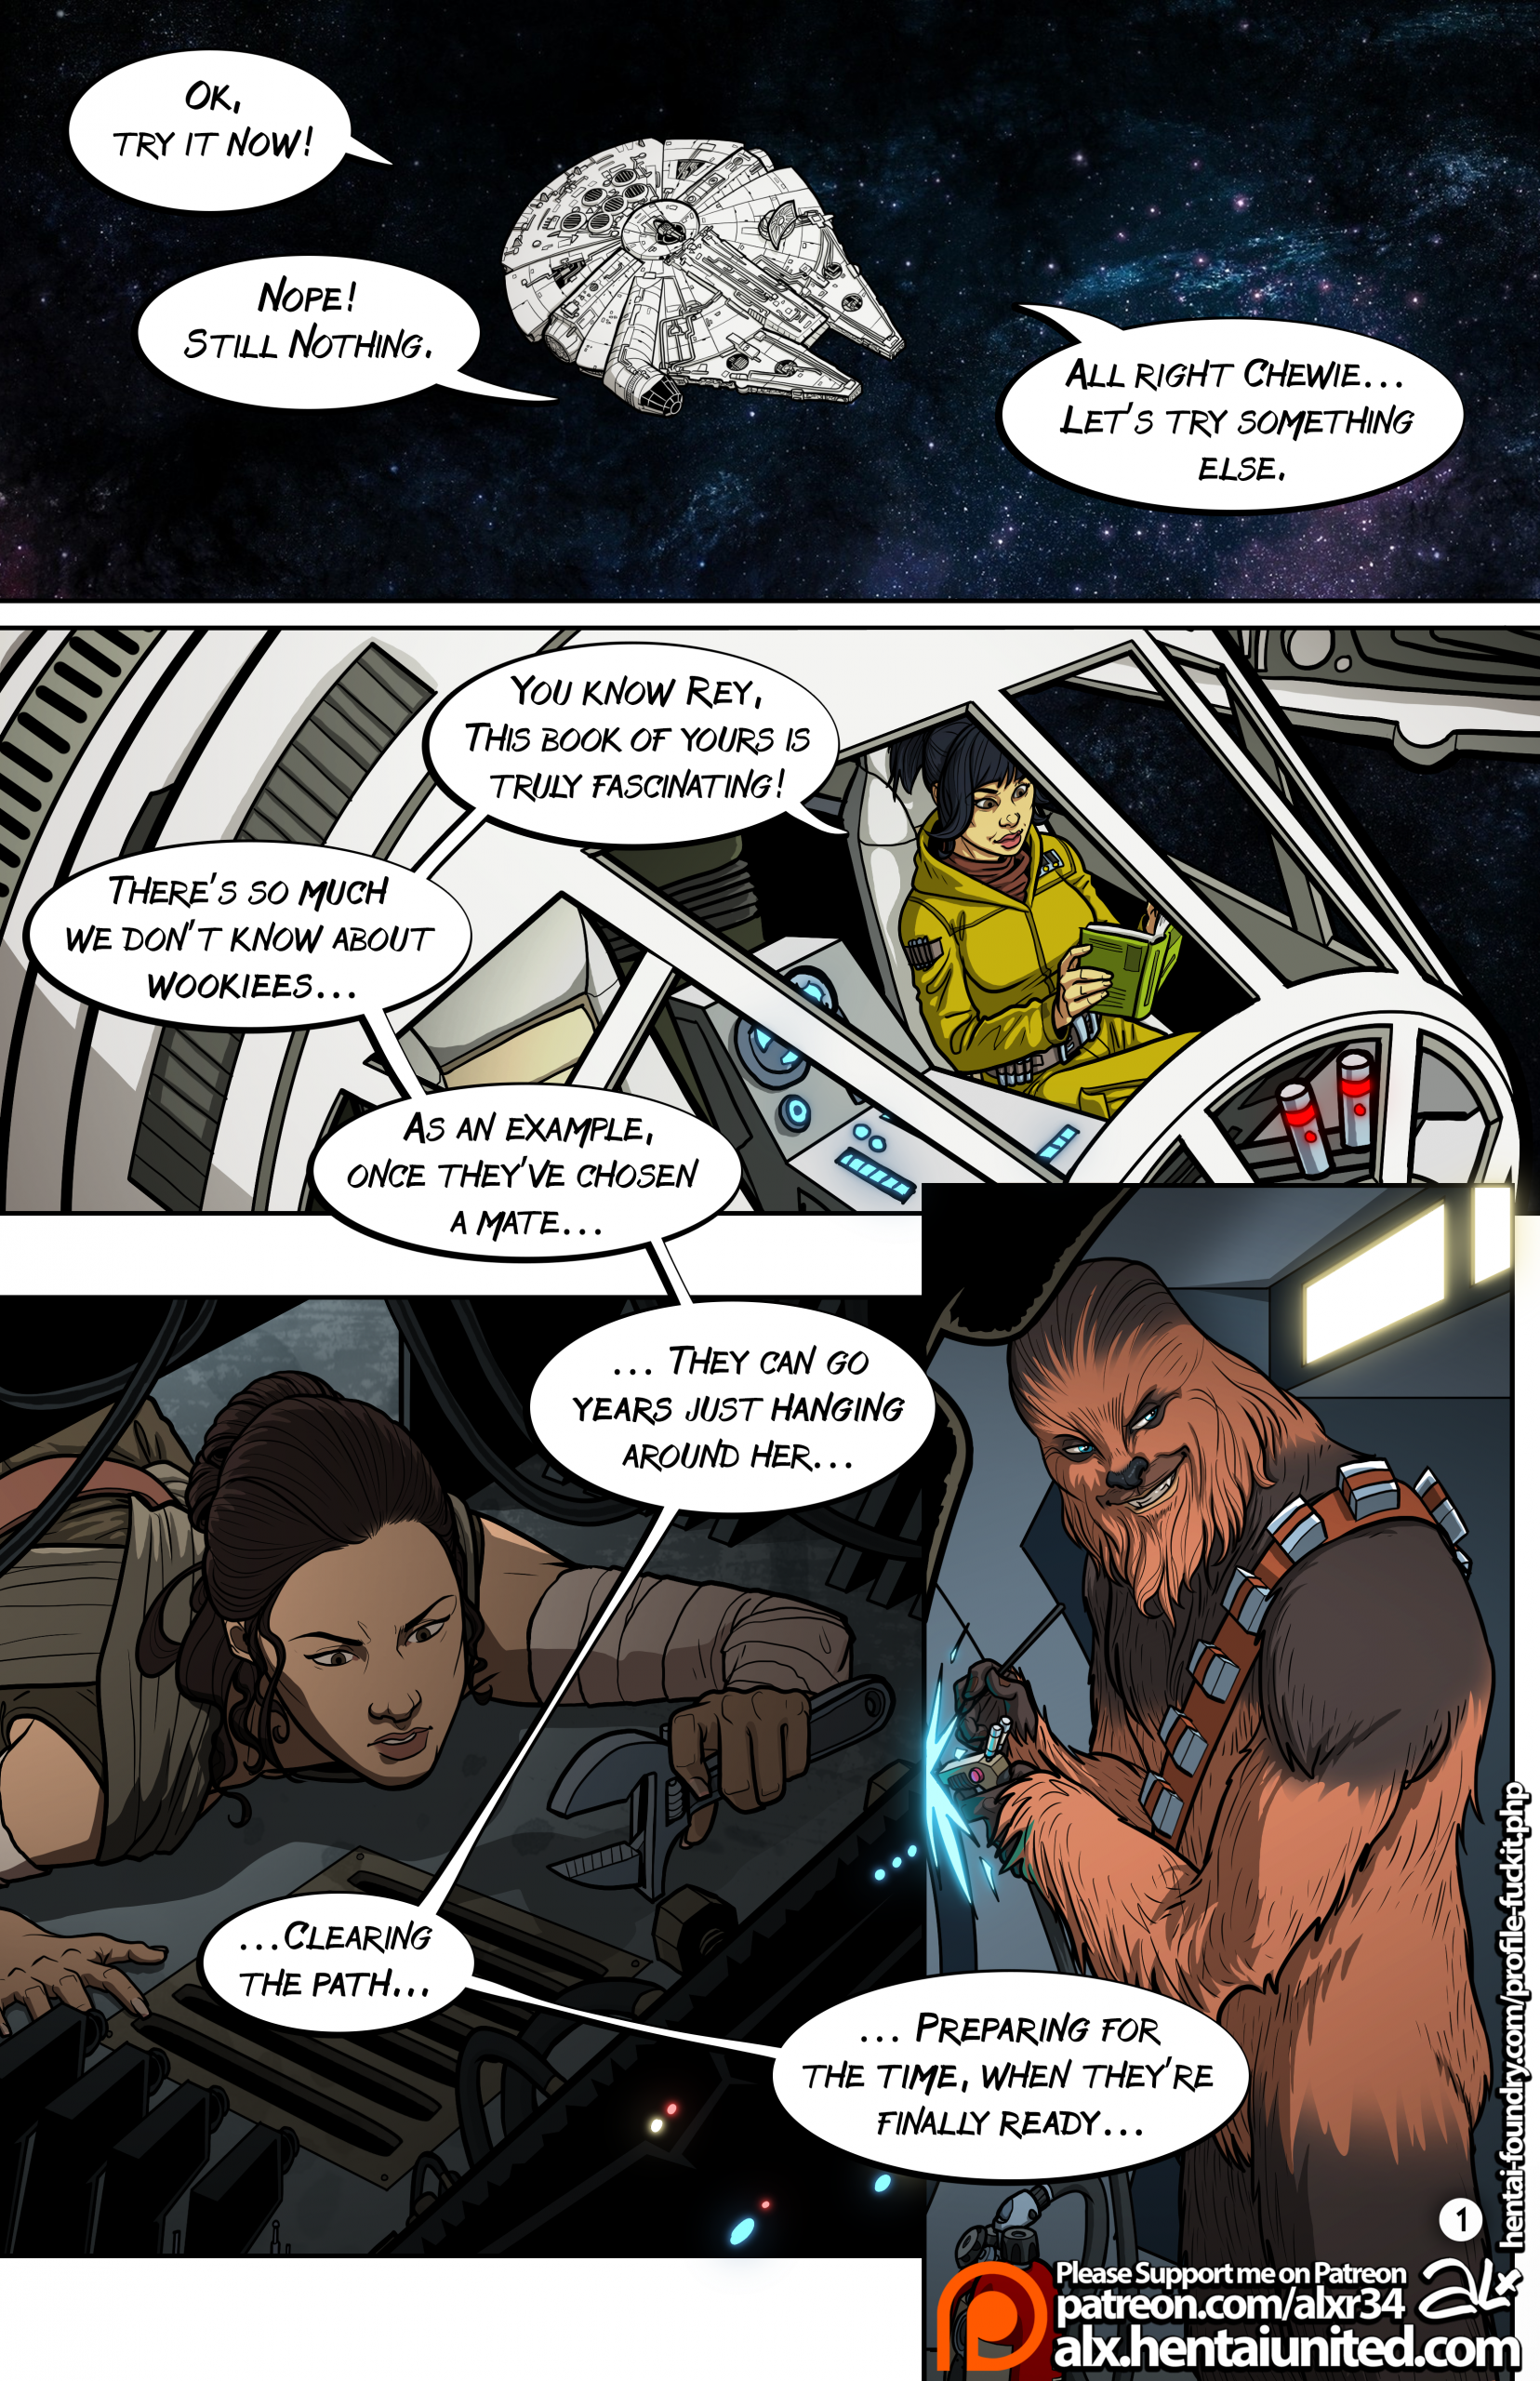 Star Wars: A Complete Guide to Wookie Sex porn comics Oral sex, Aliens, Anal Sex, Masturbation